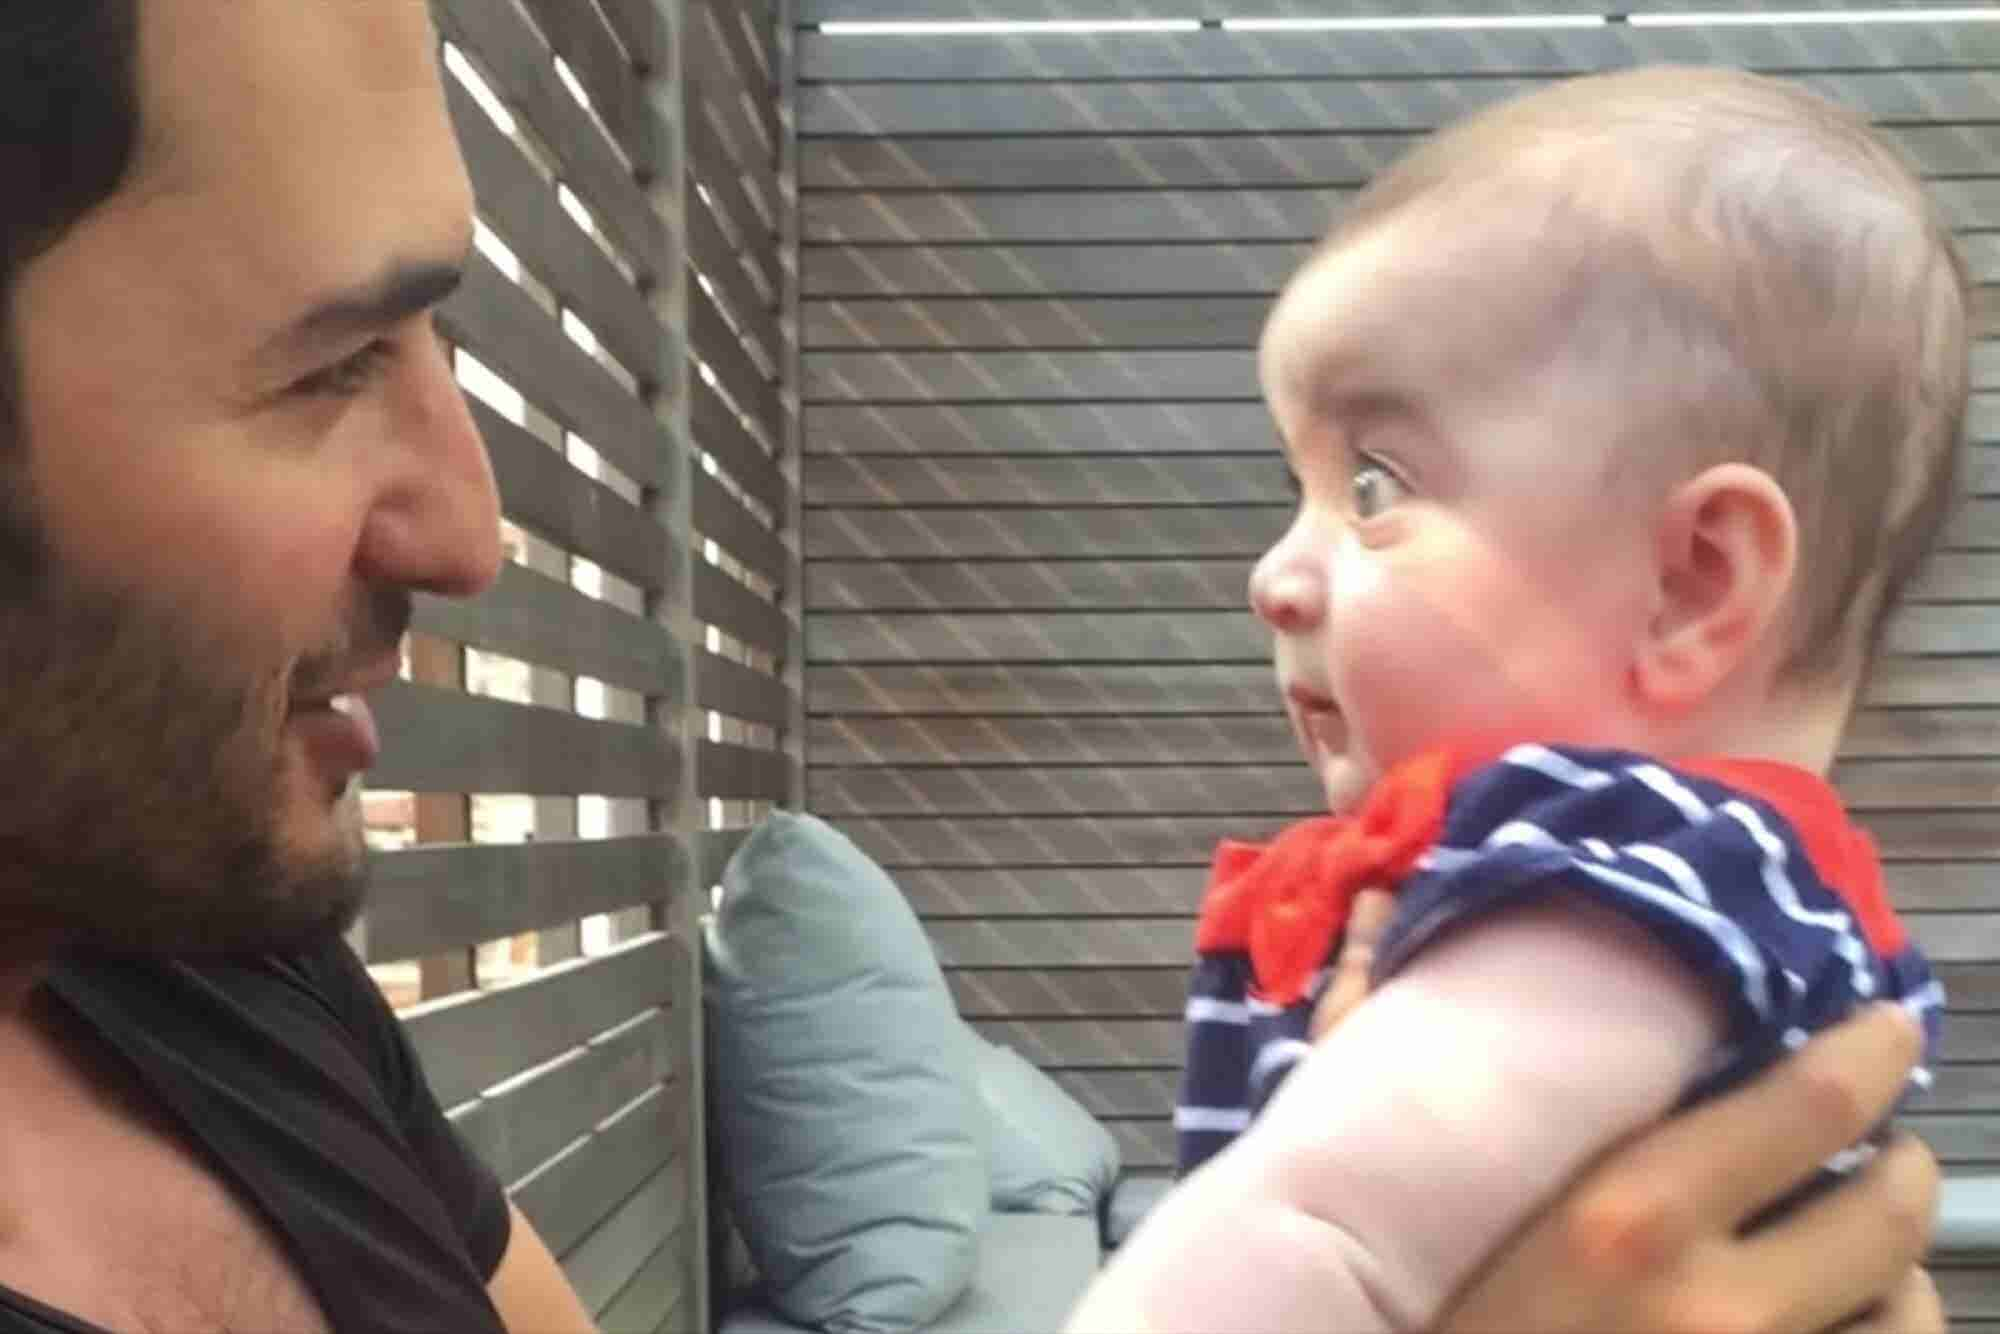 Futurist Talks to a Baby About the Meaning of Life and the Video Goes...